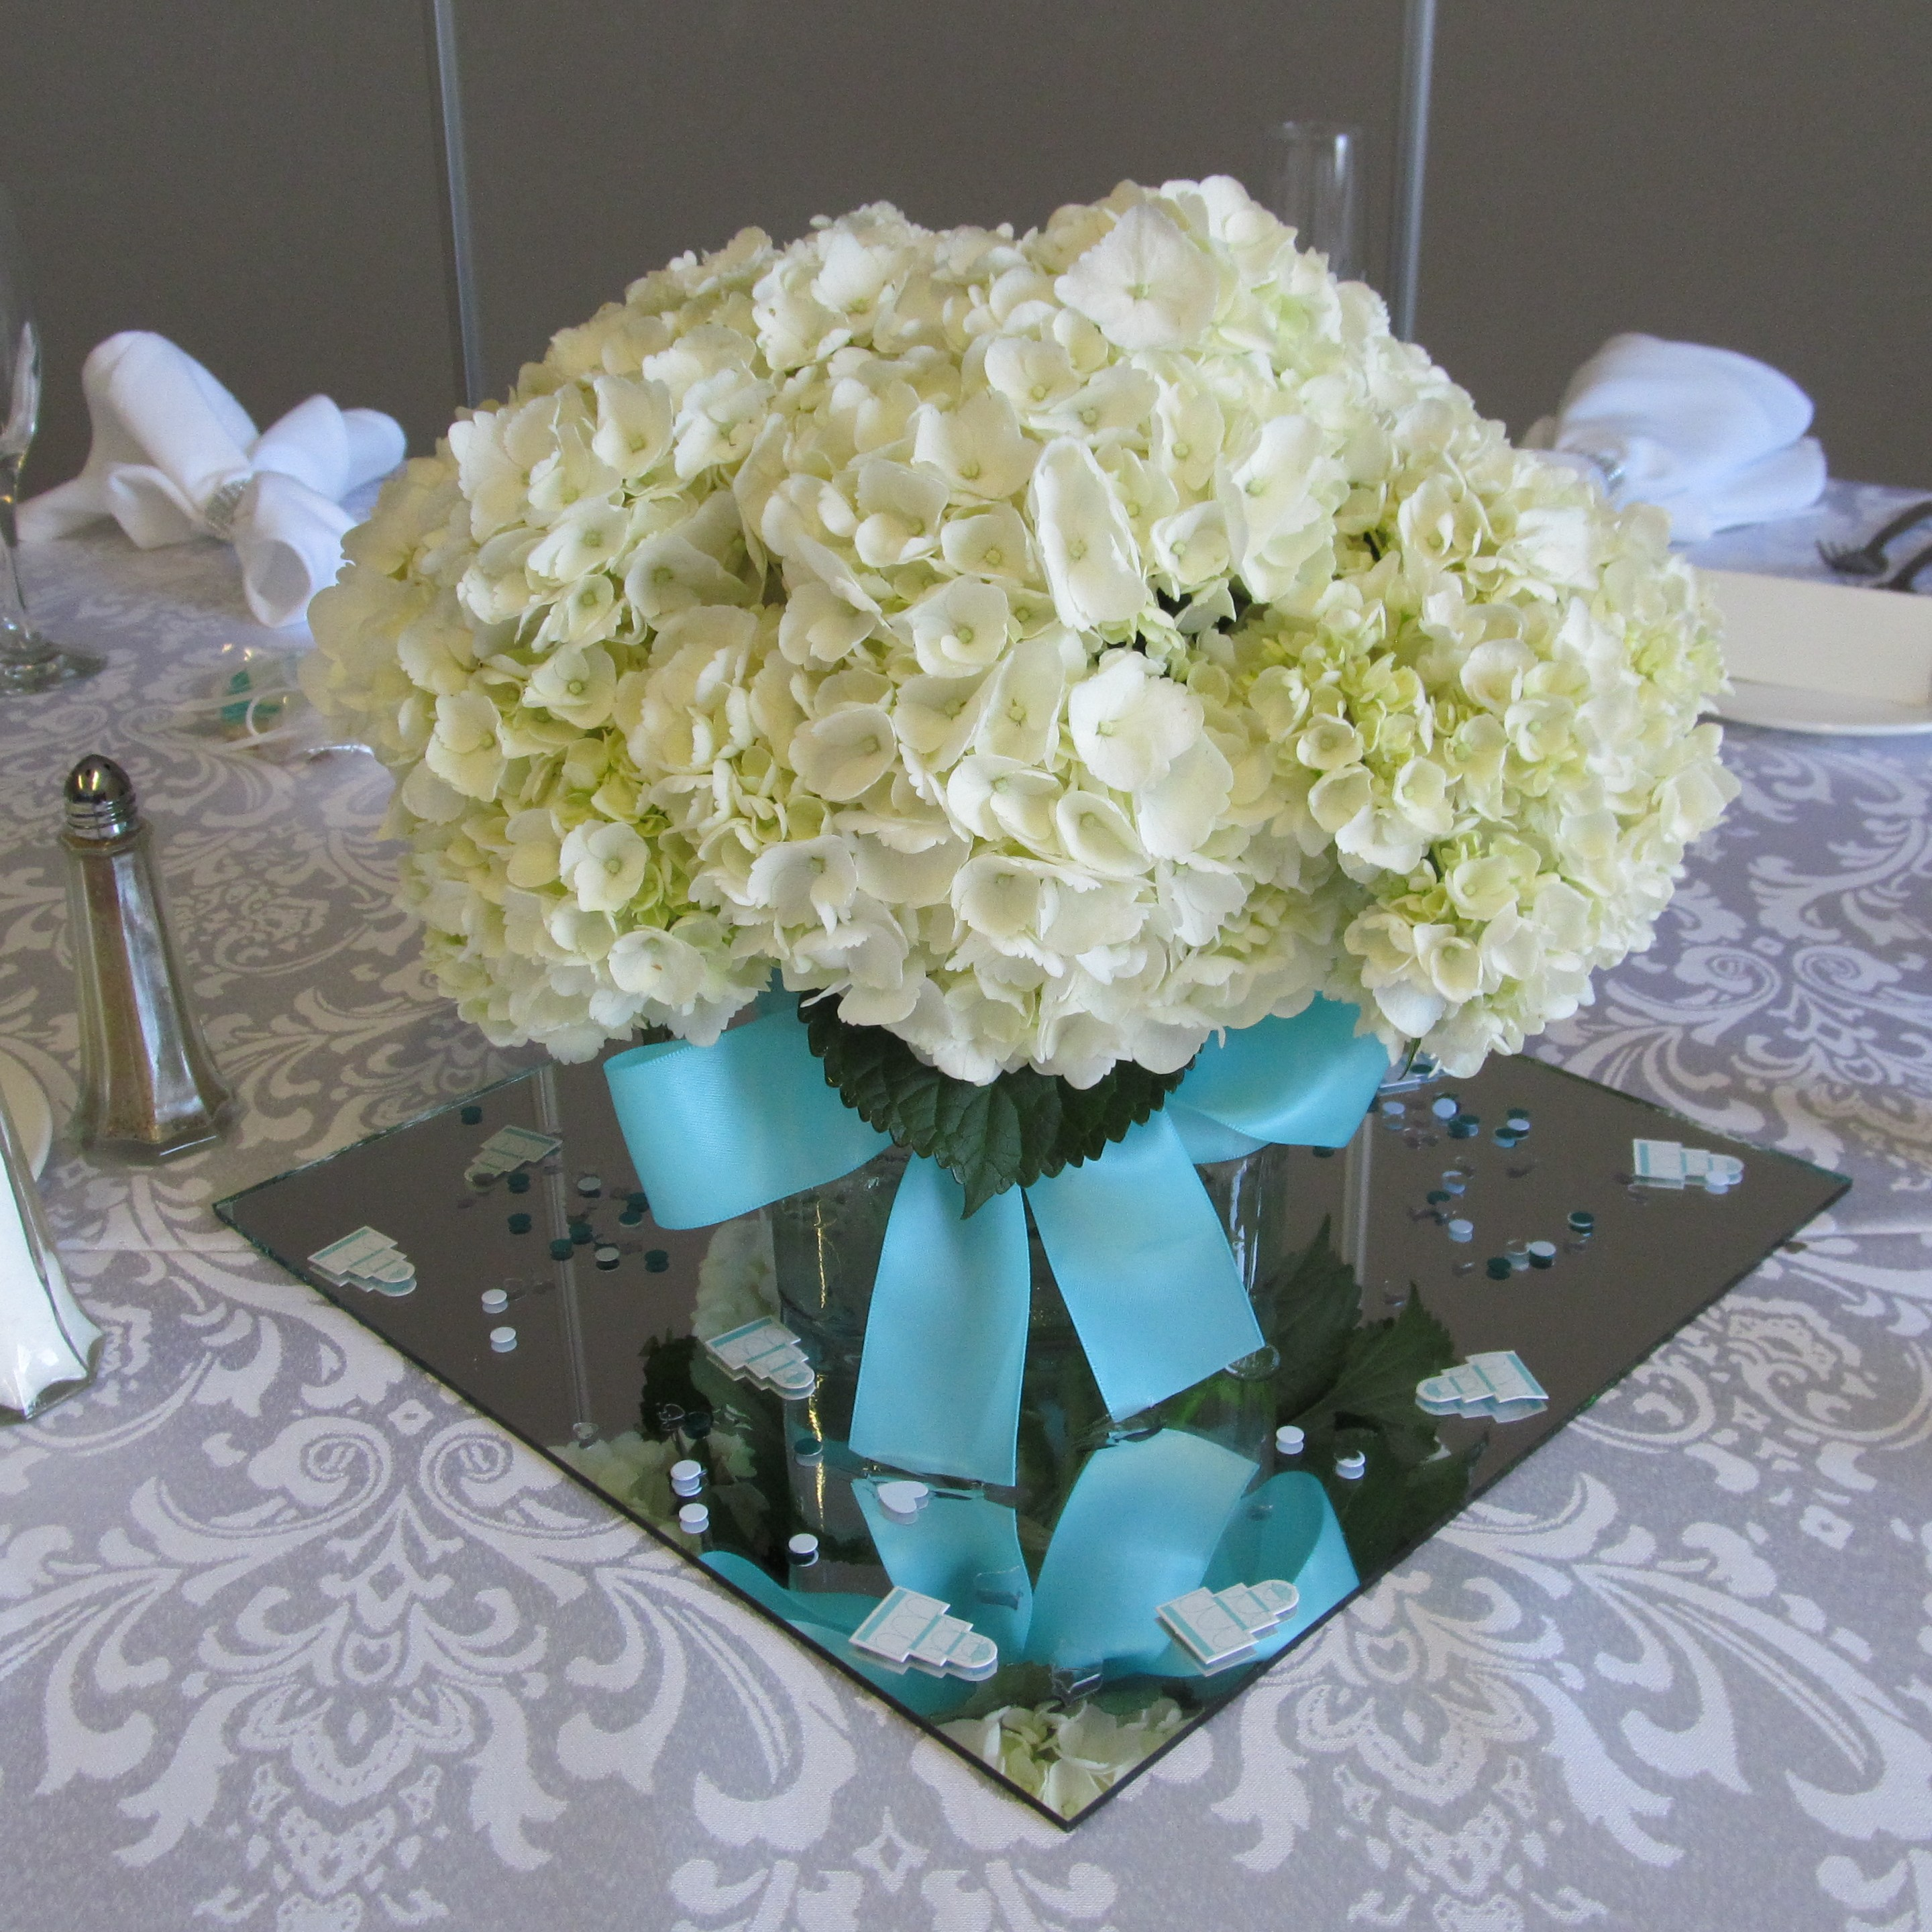 Tiffany blue buffalo wedding event flowers by lipinoga